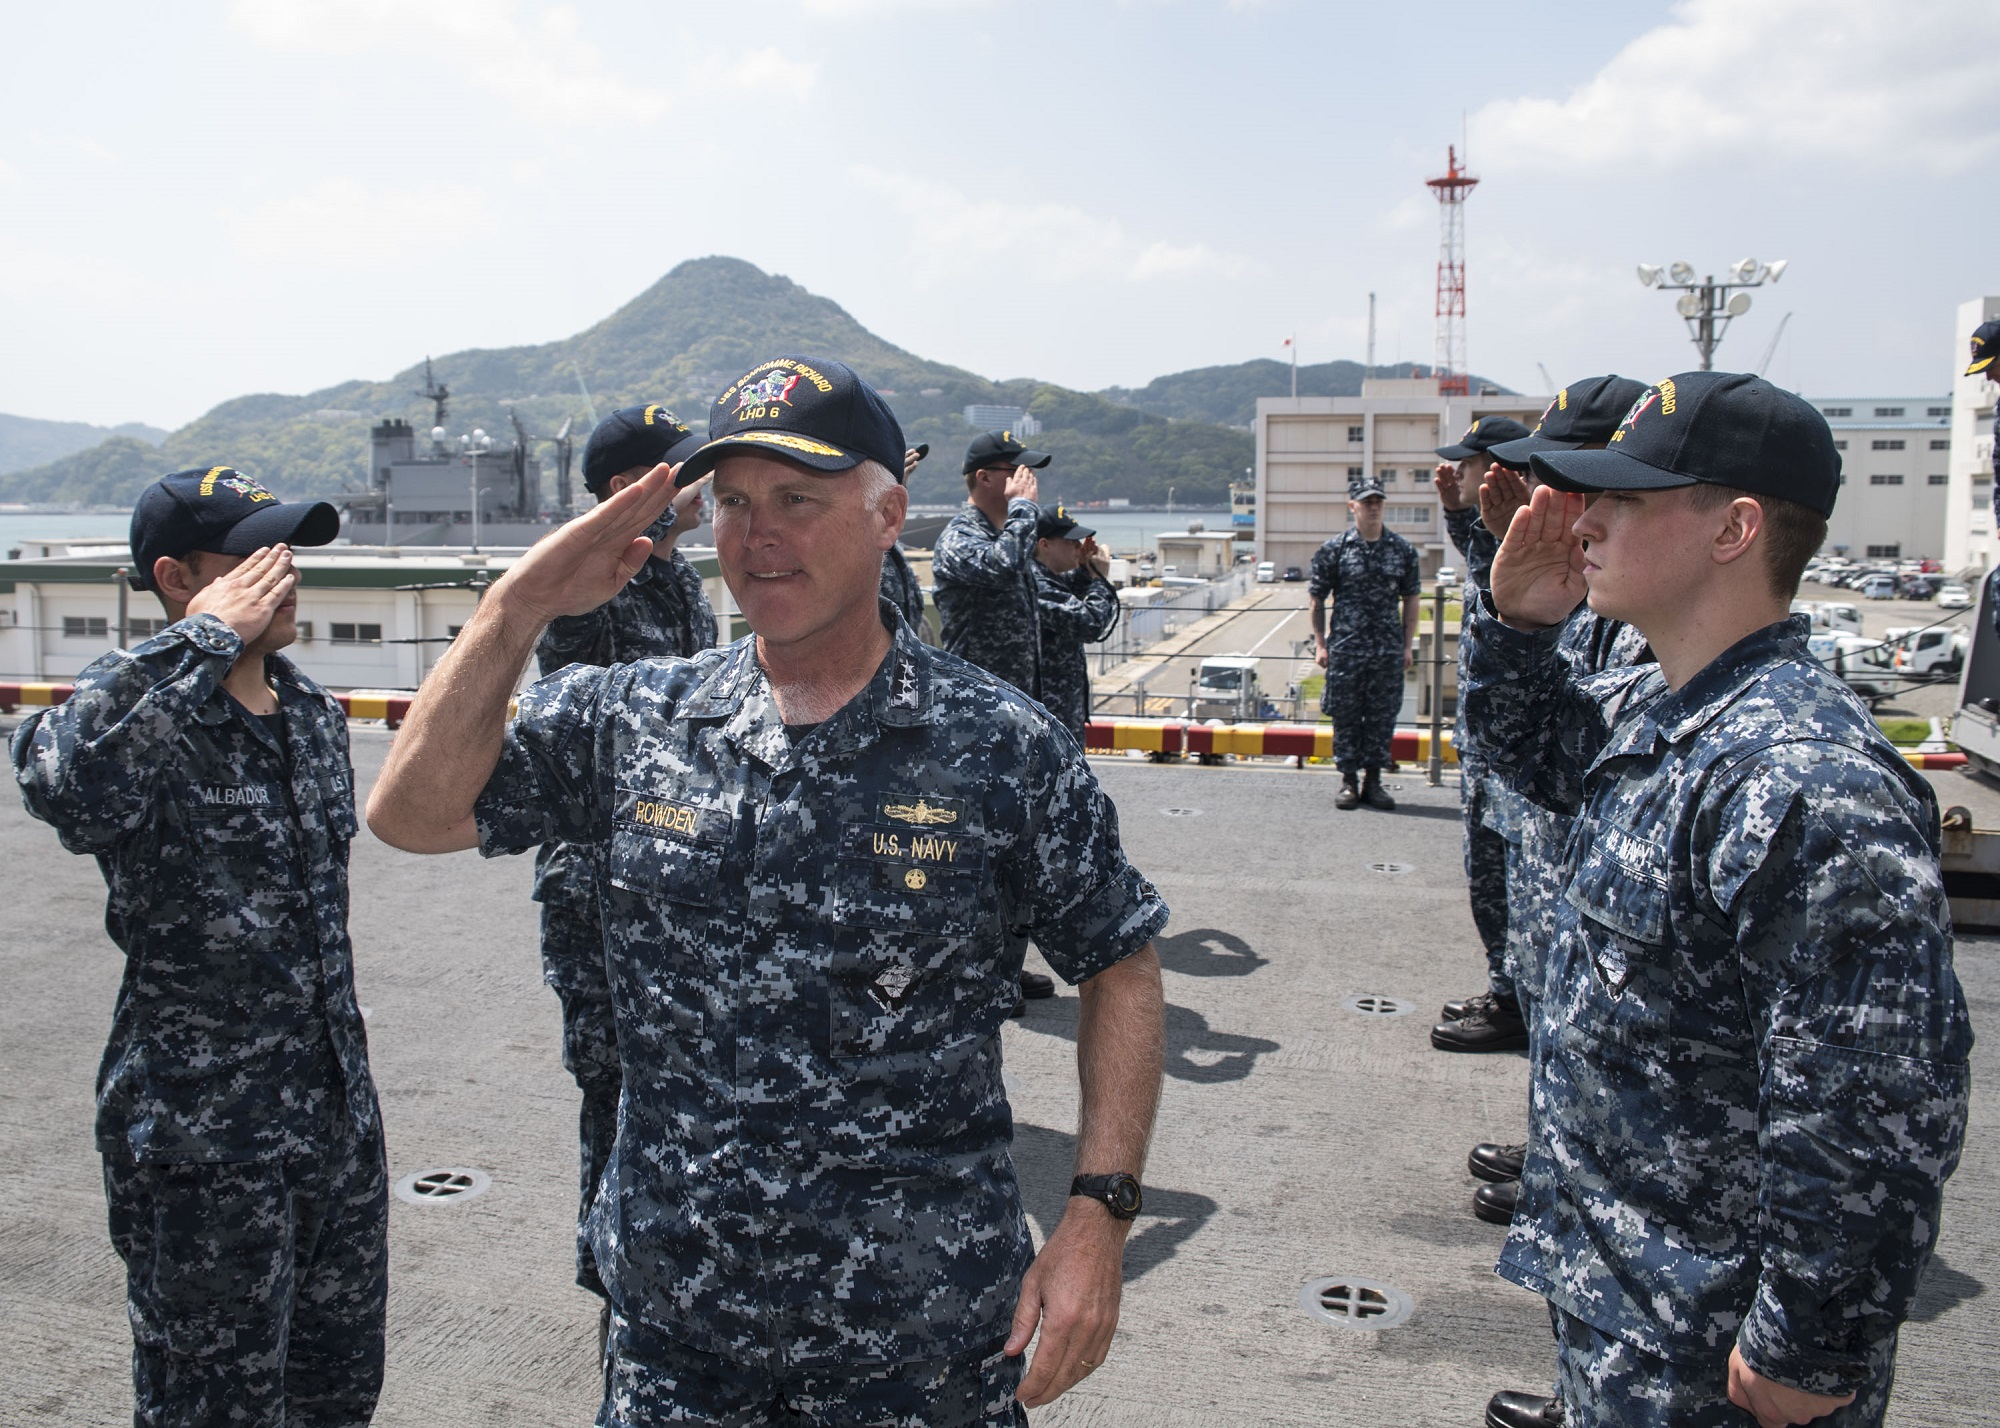 Vice Adm. Thomas Rowden turned over the reins of the Naval Surface Force Pacific Thursday after a recommendation that he be relieved. (MCSN Jesse Marquez Magallanes/Navy)